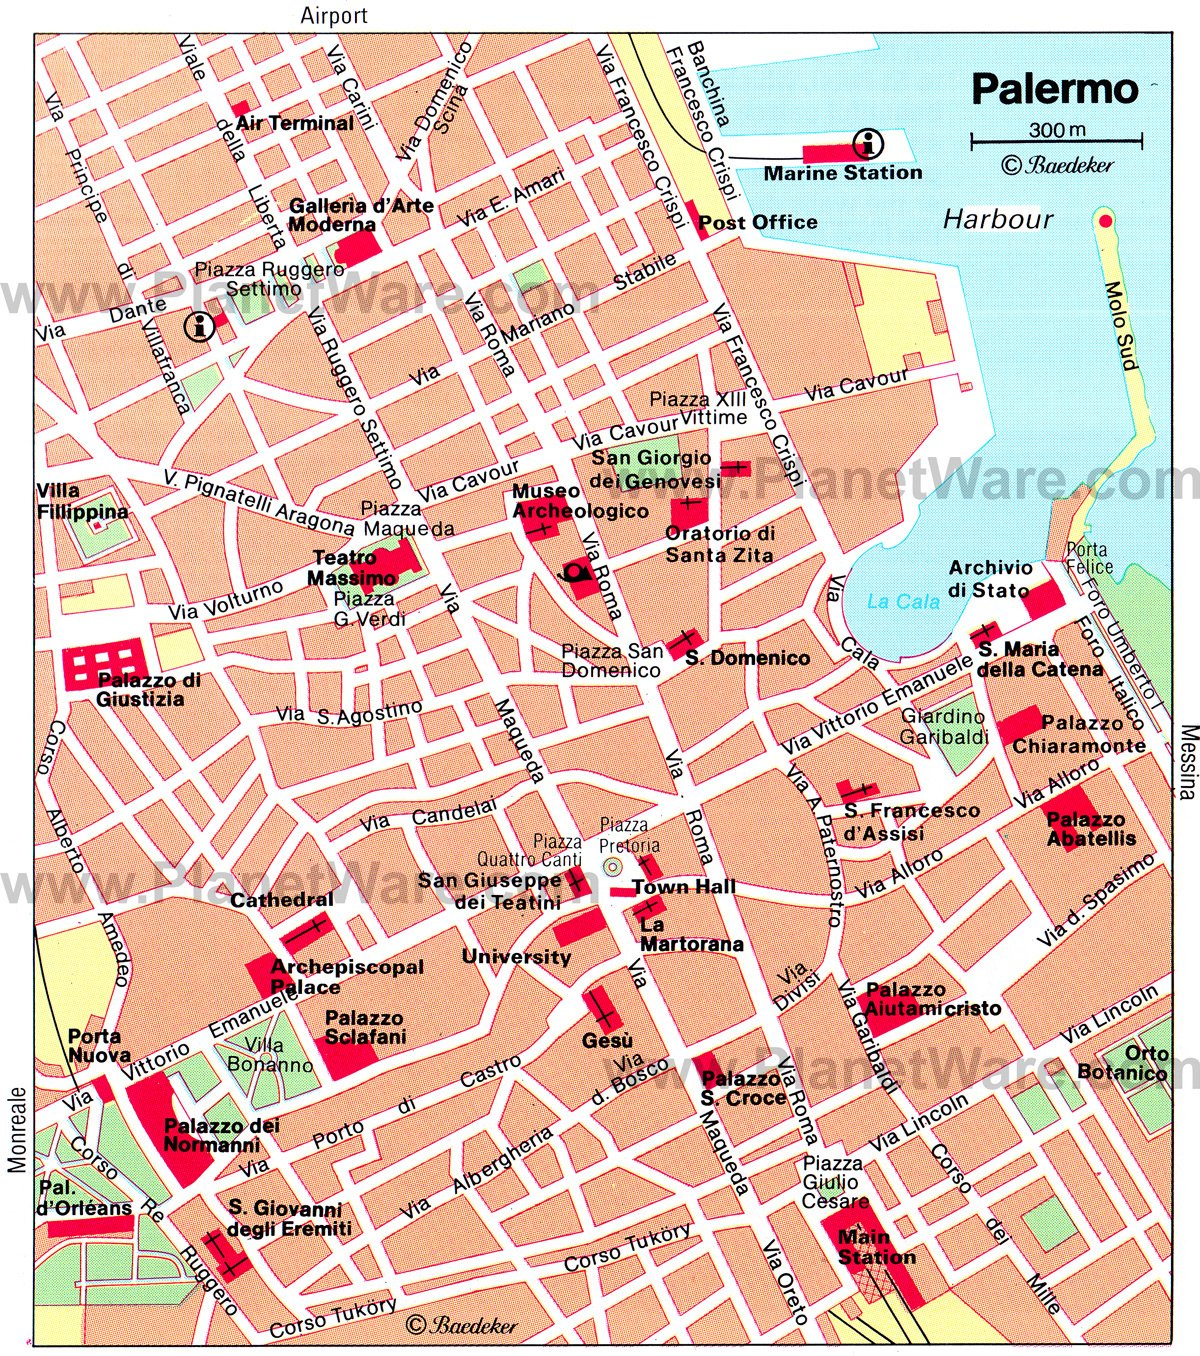 15 TopRated Tourist Attractions in Palermo – Sicily Tourist Map